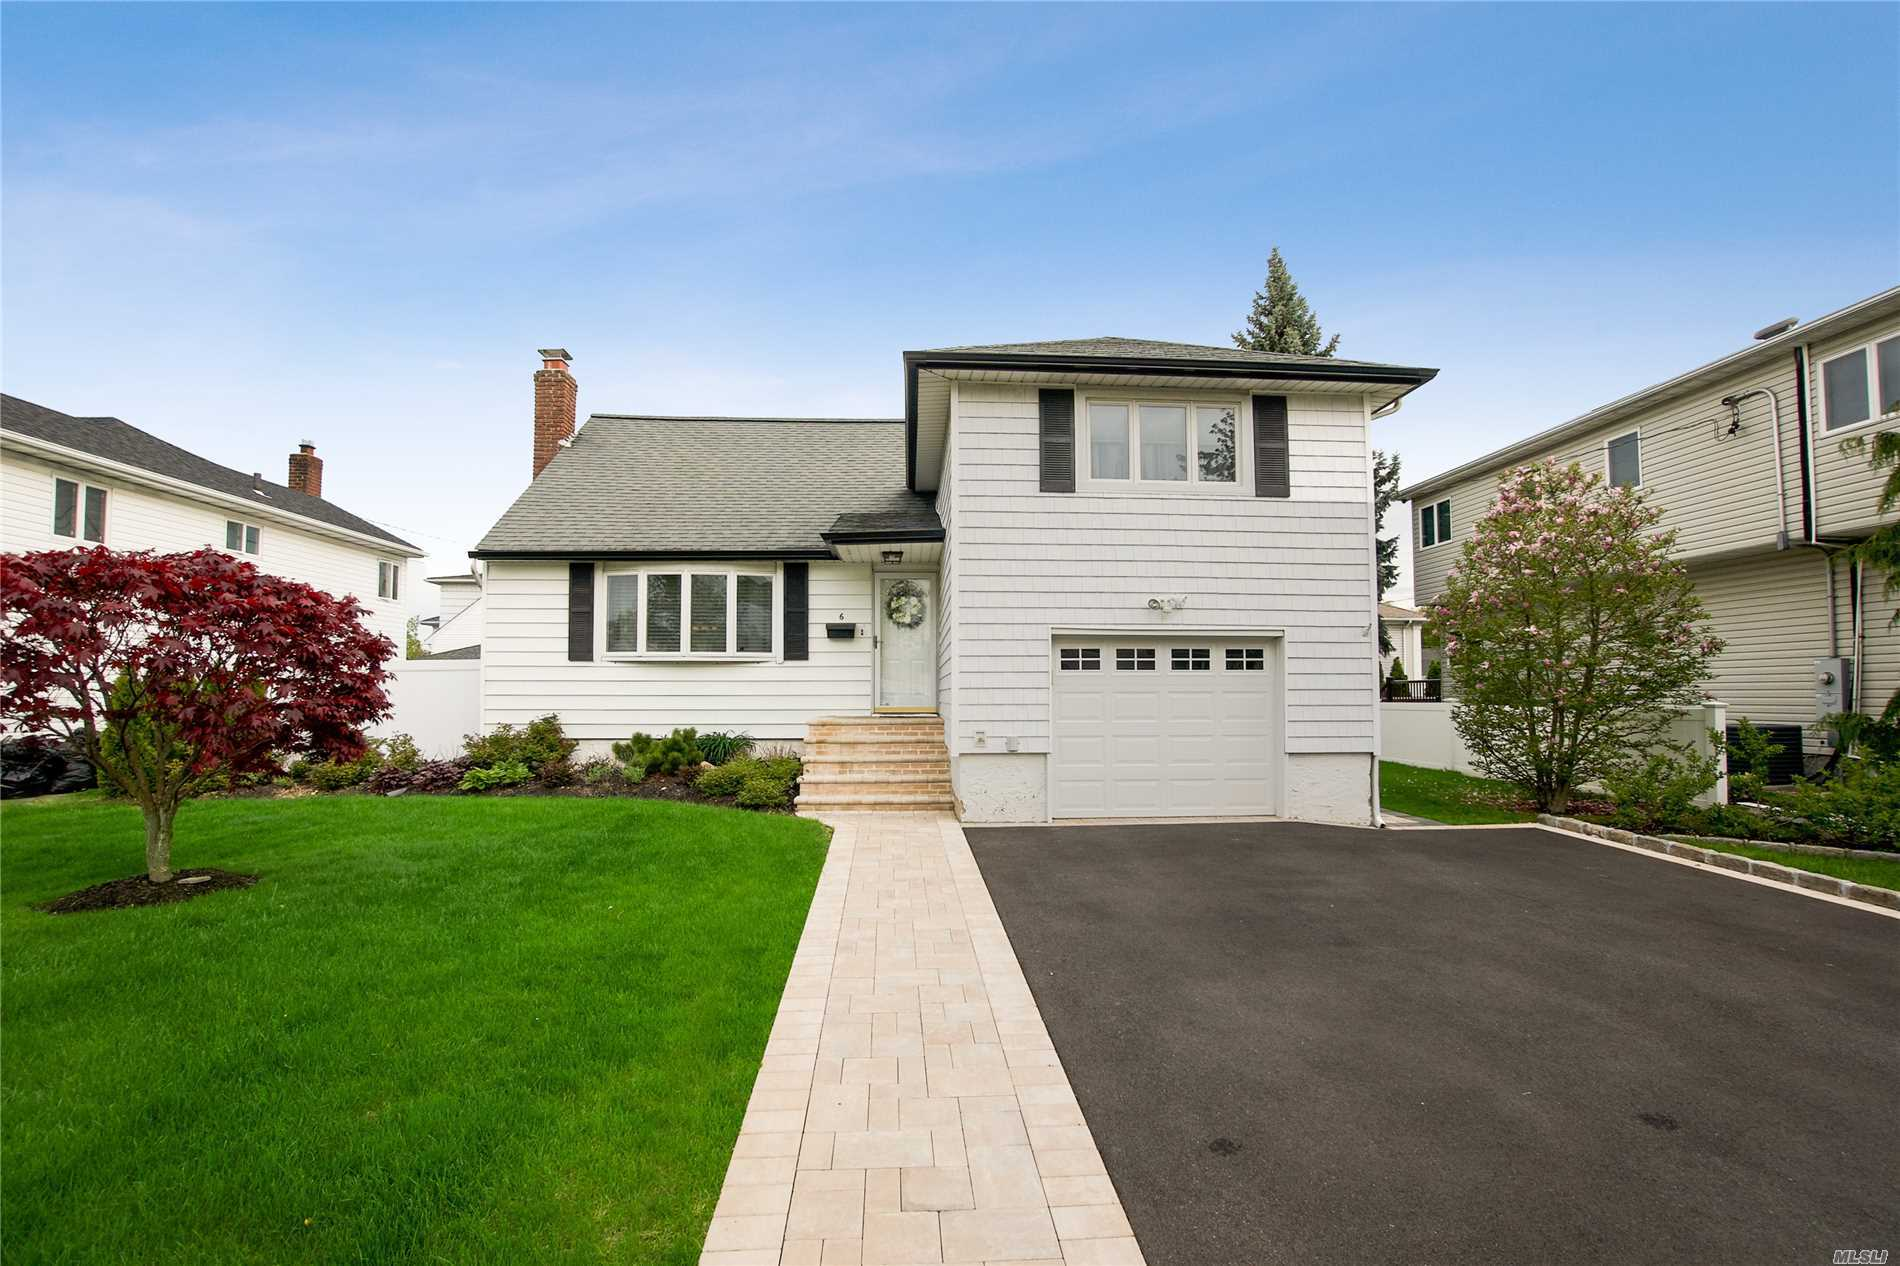 6 Marbourne Rd - Bethpage, New York